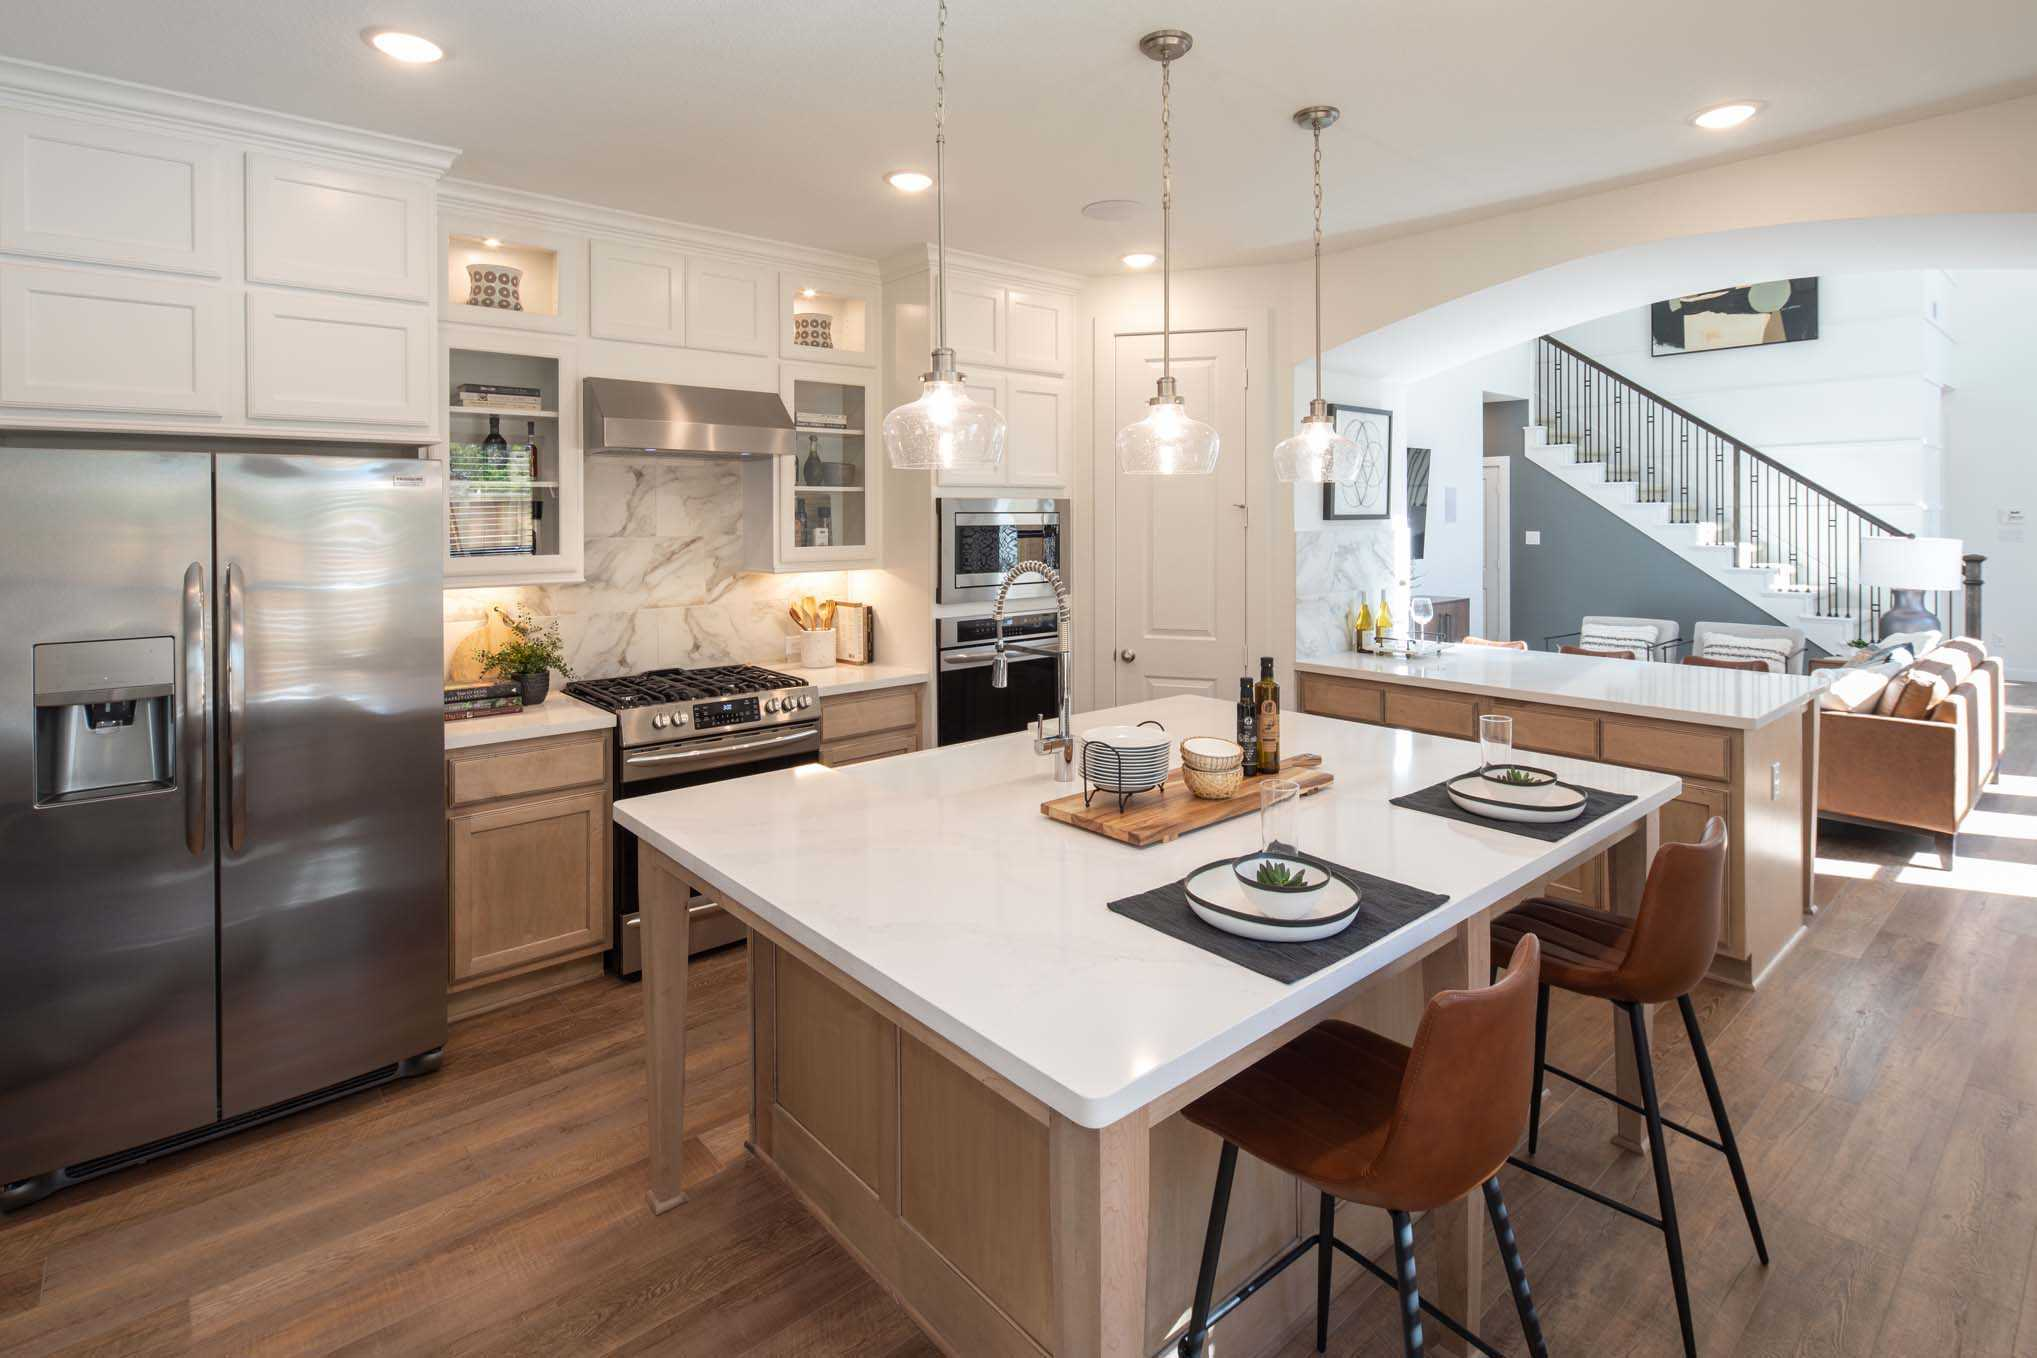 Kitchen featured in the Plan Everleigh By Highland Homes in Austin, TX